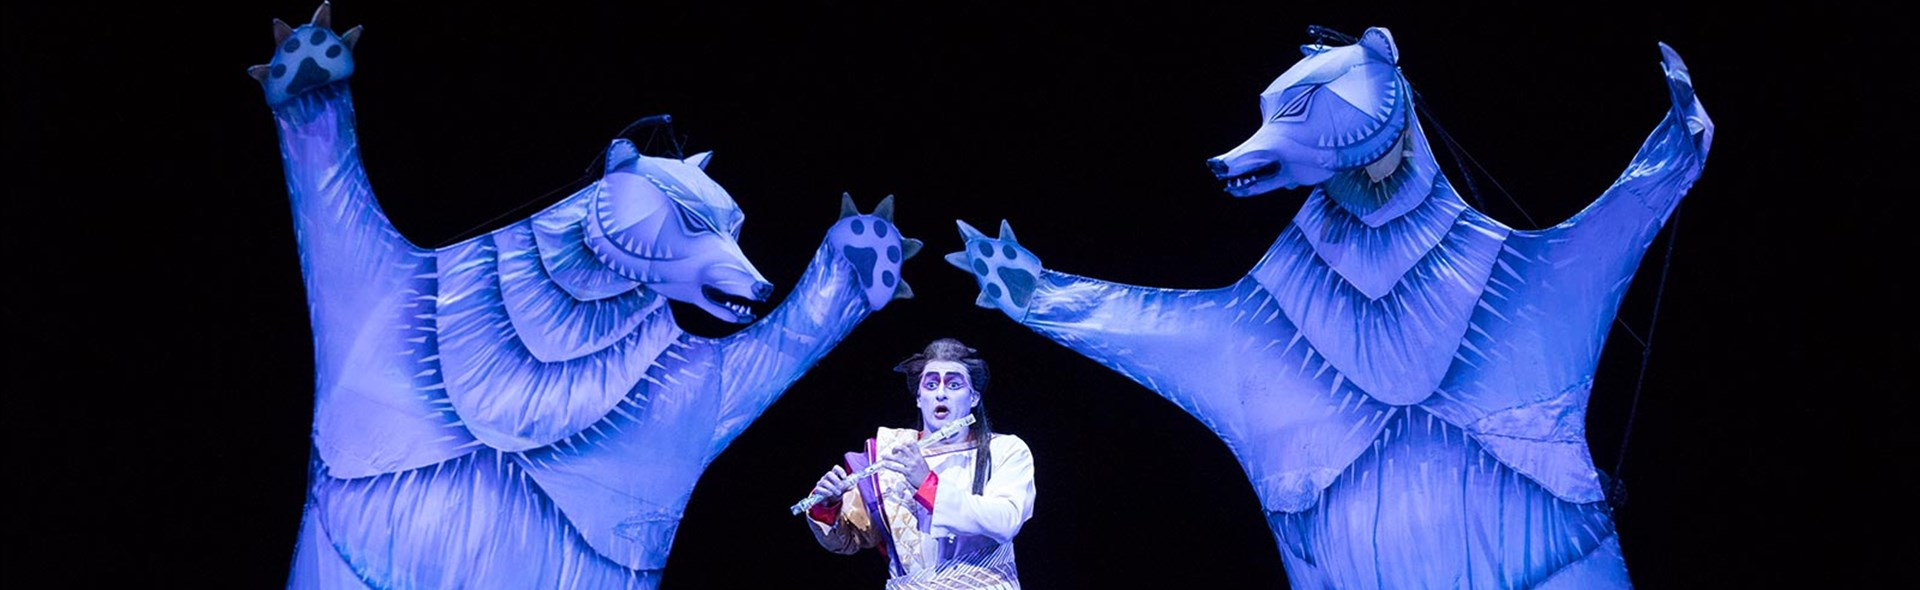 Met Opera - The Magic Flute